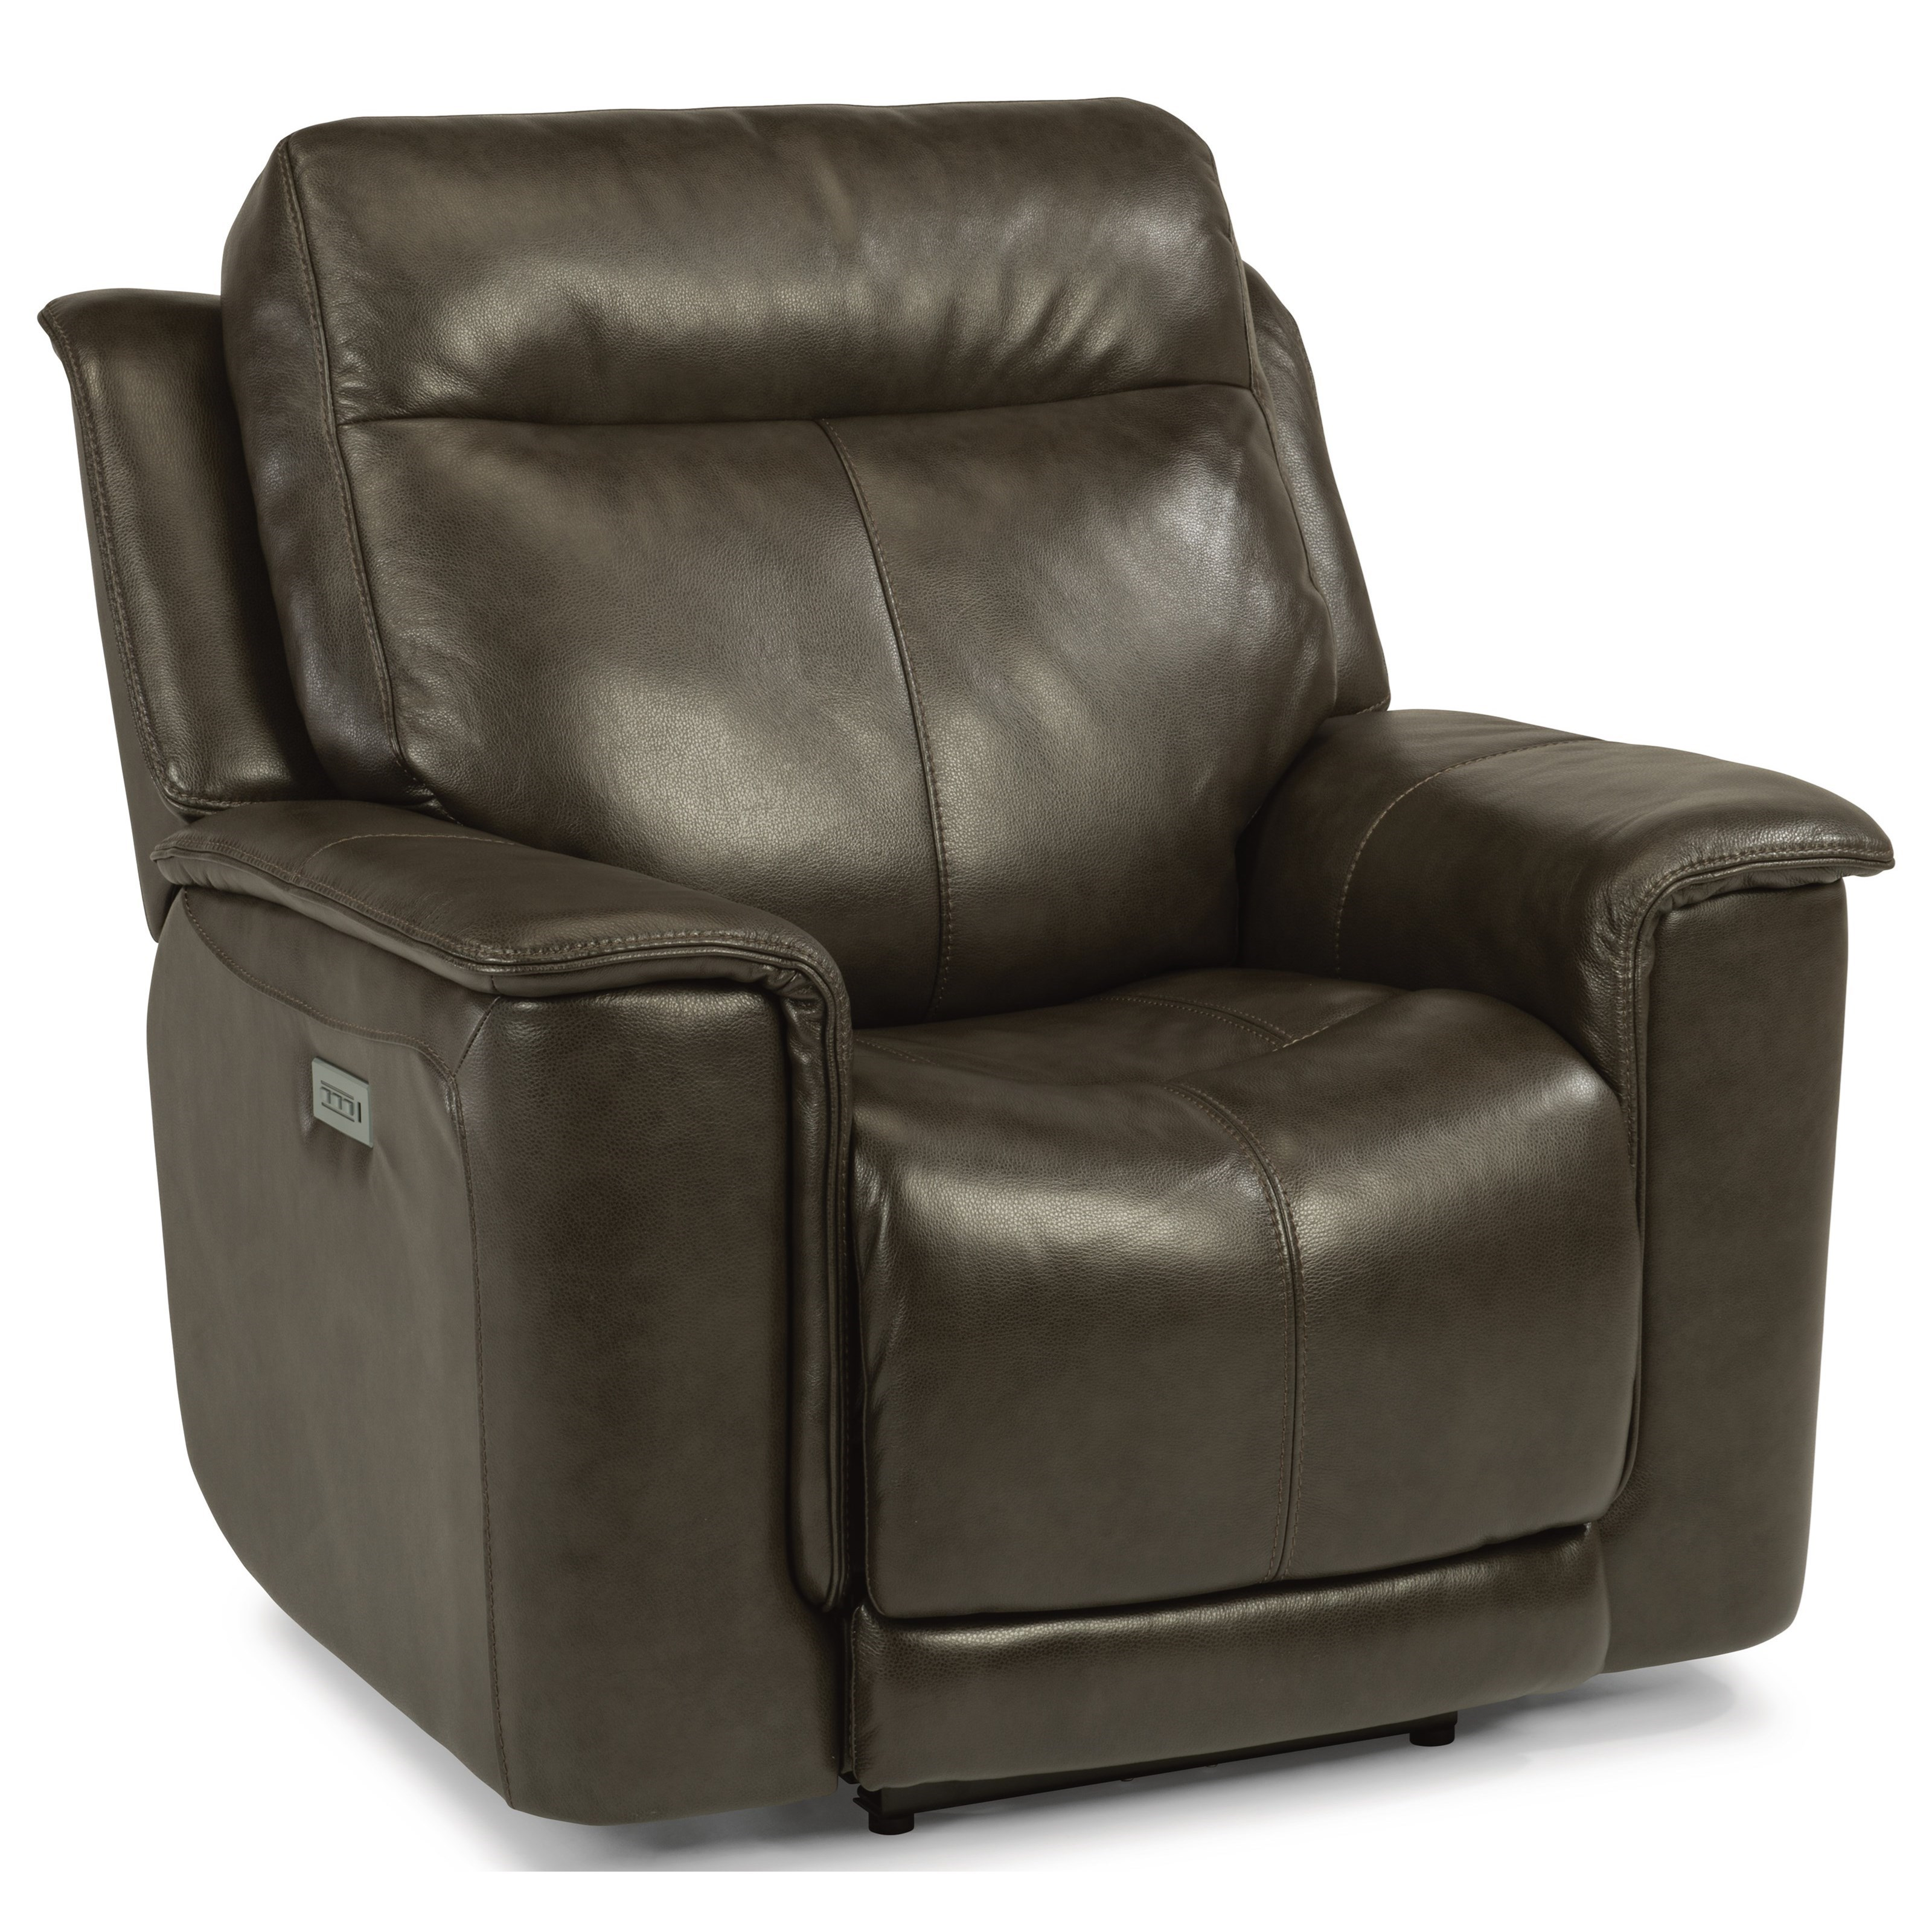 Attirant Flexsteel Latitudes   Miller Power Recliner   Item Number: 1729 50PH 204